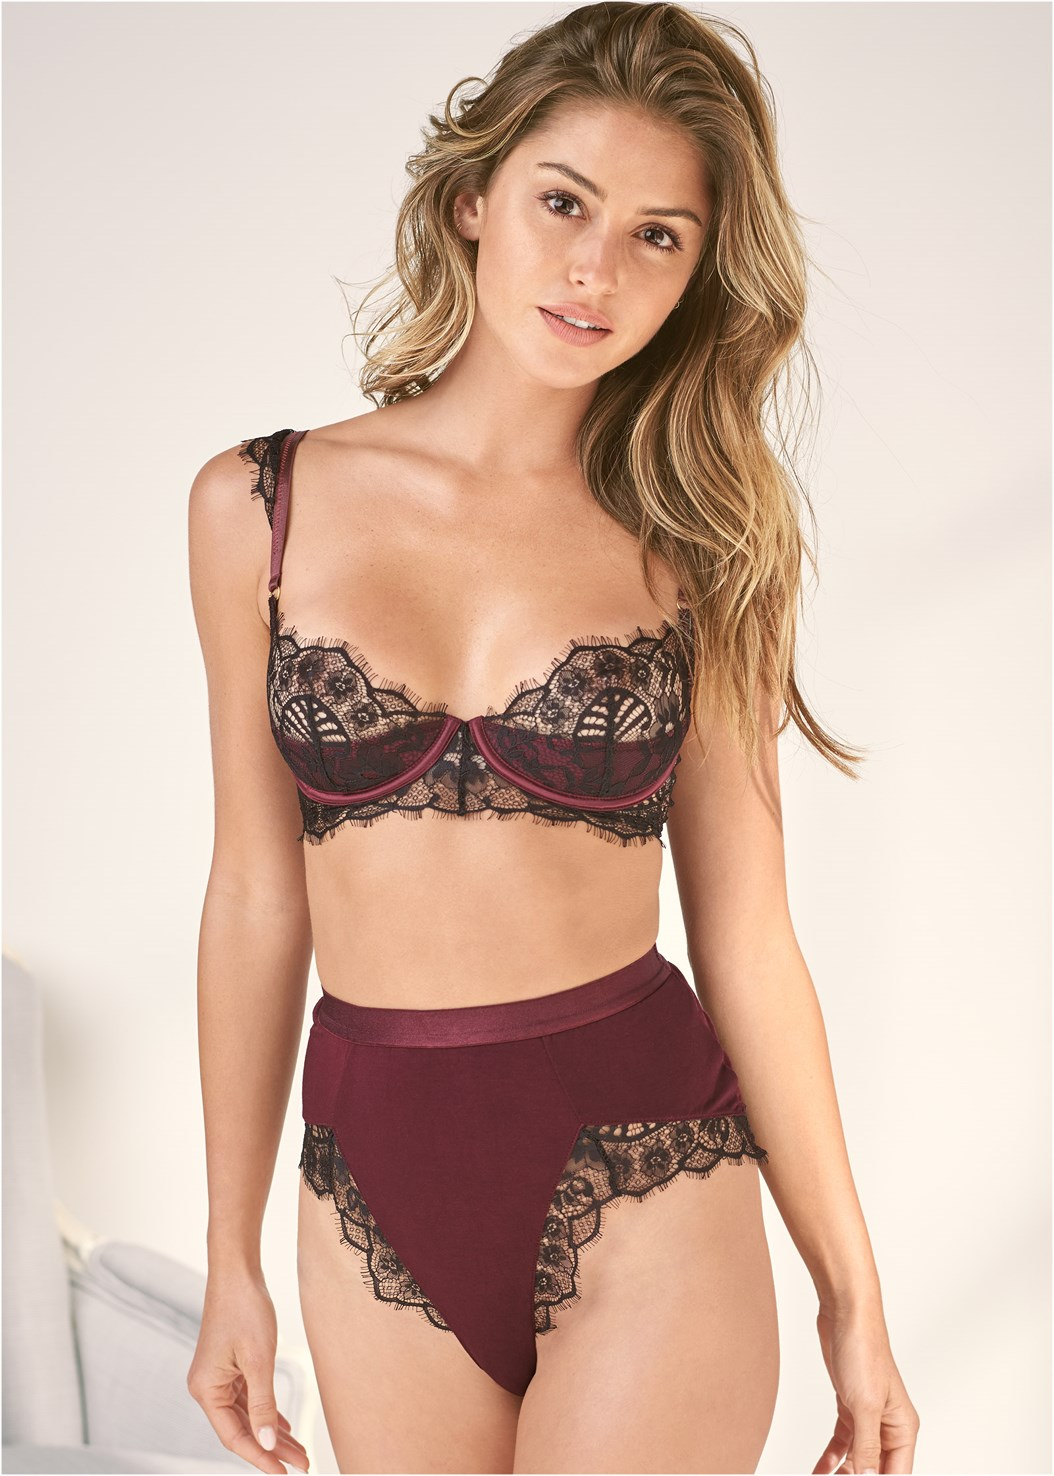 Balconette Bra Set